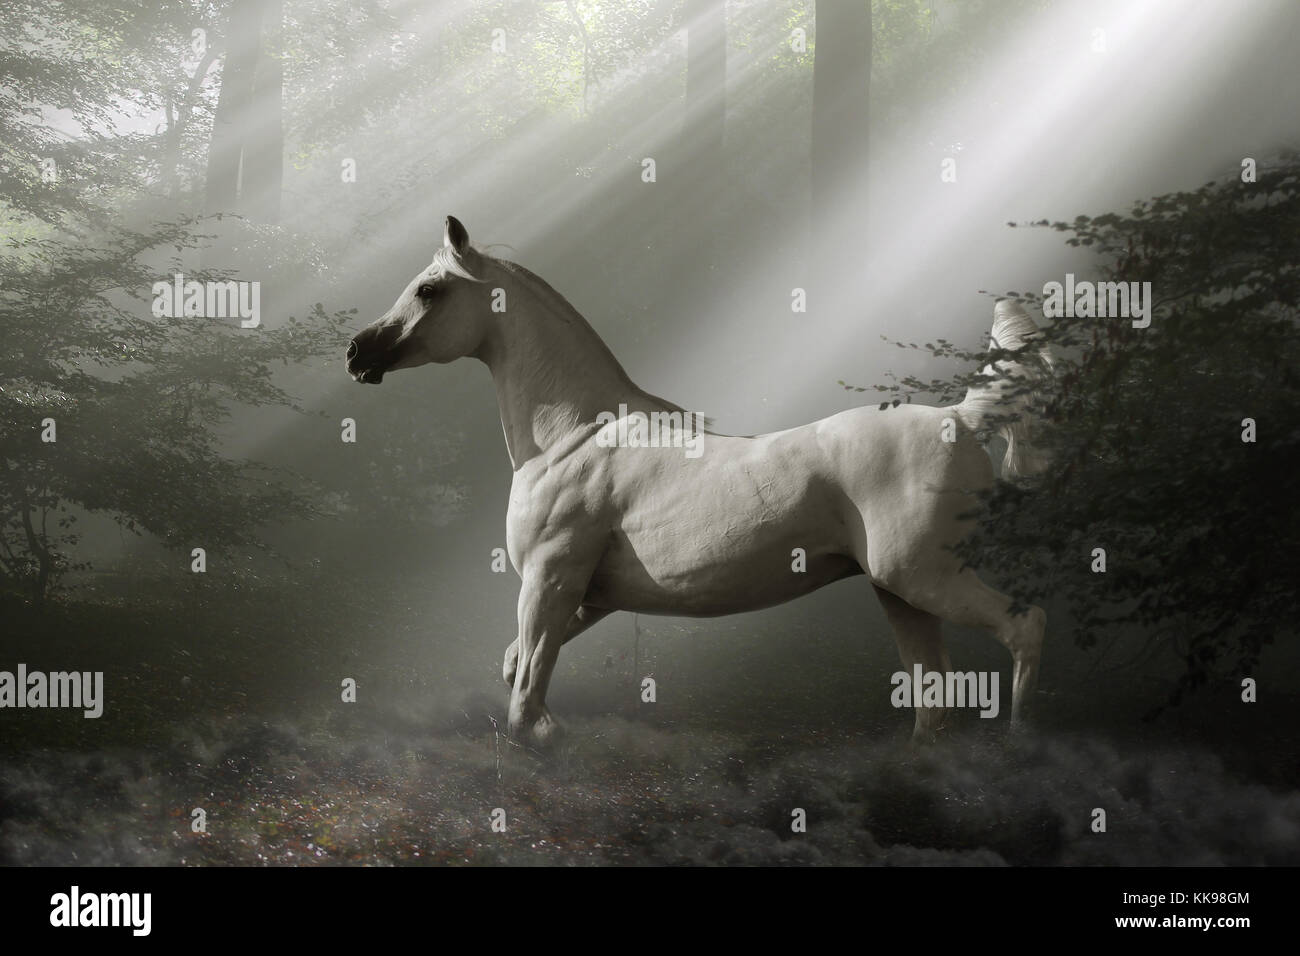 A mystical white horse emerges from the mist into a shaft of sunlight in the depths of a magical forest. - Stock Image